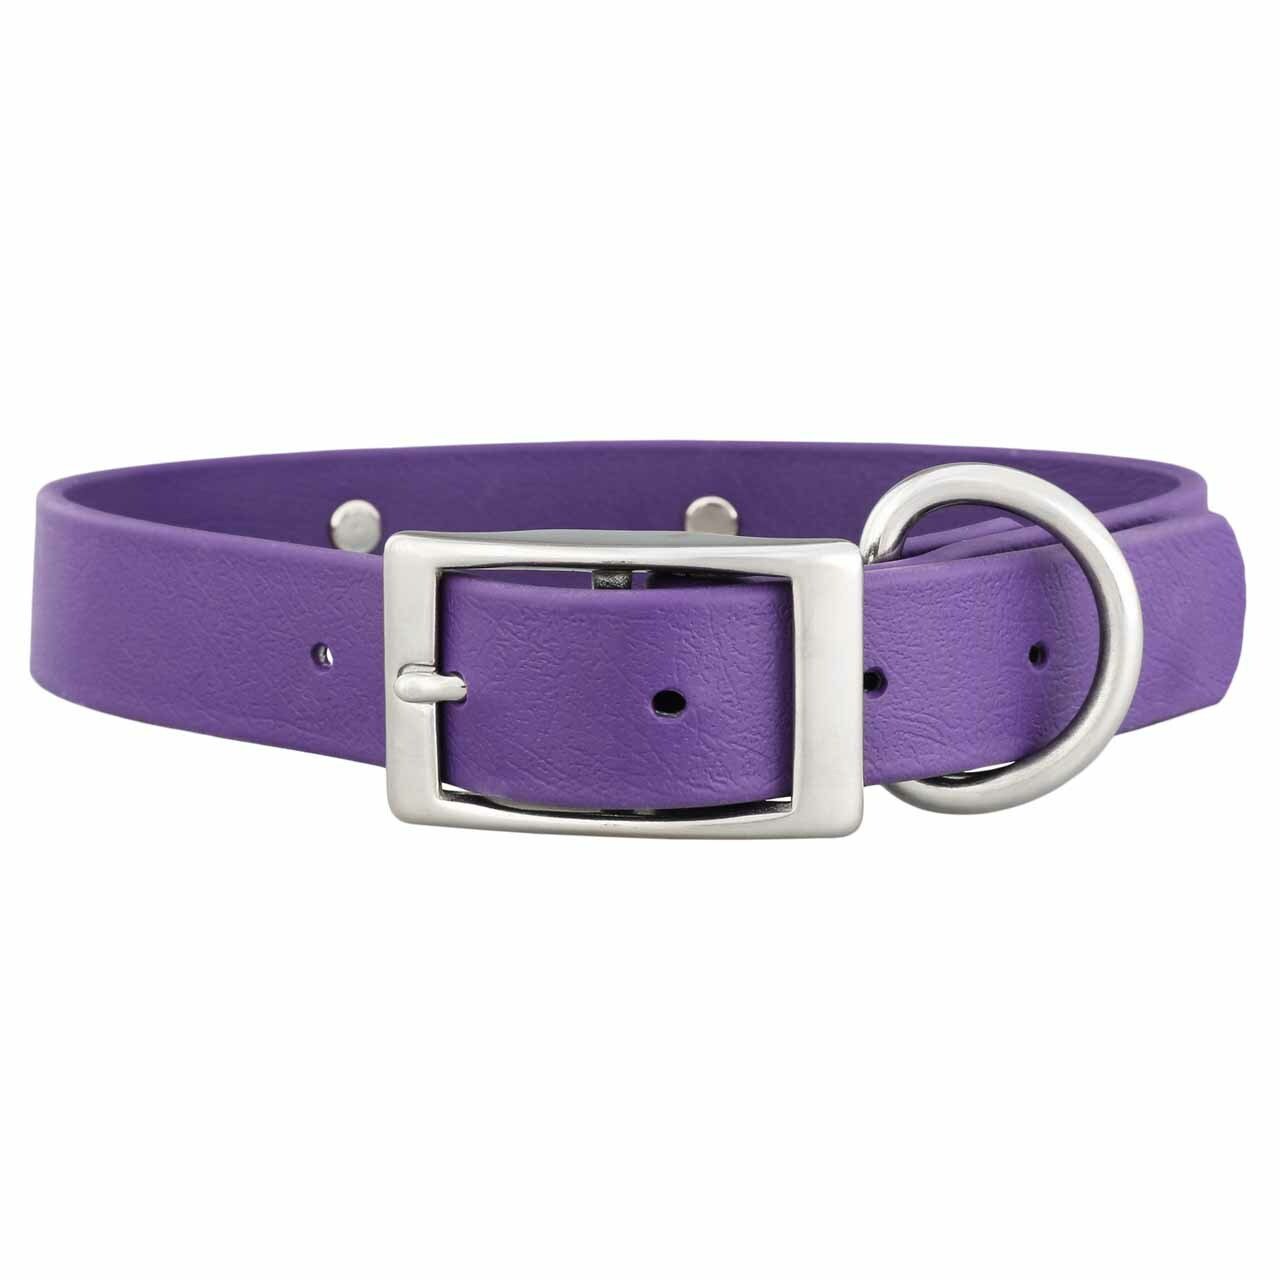 Waterproof Soft Grip Dog Collar with Personalized Nameplate Purple Buckle View